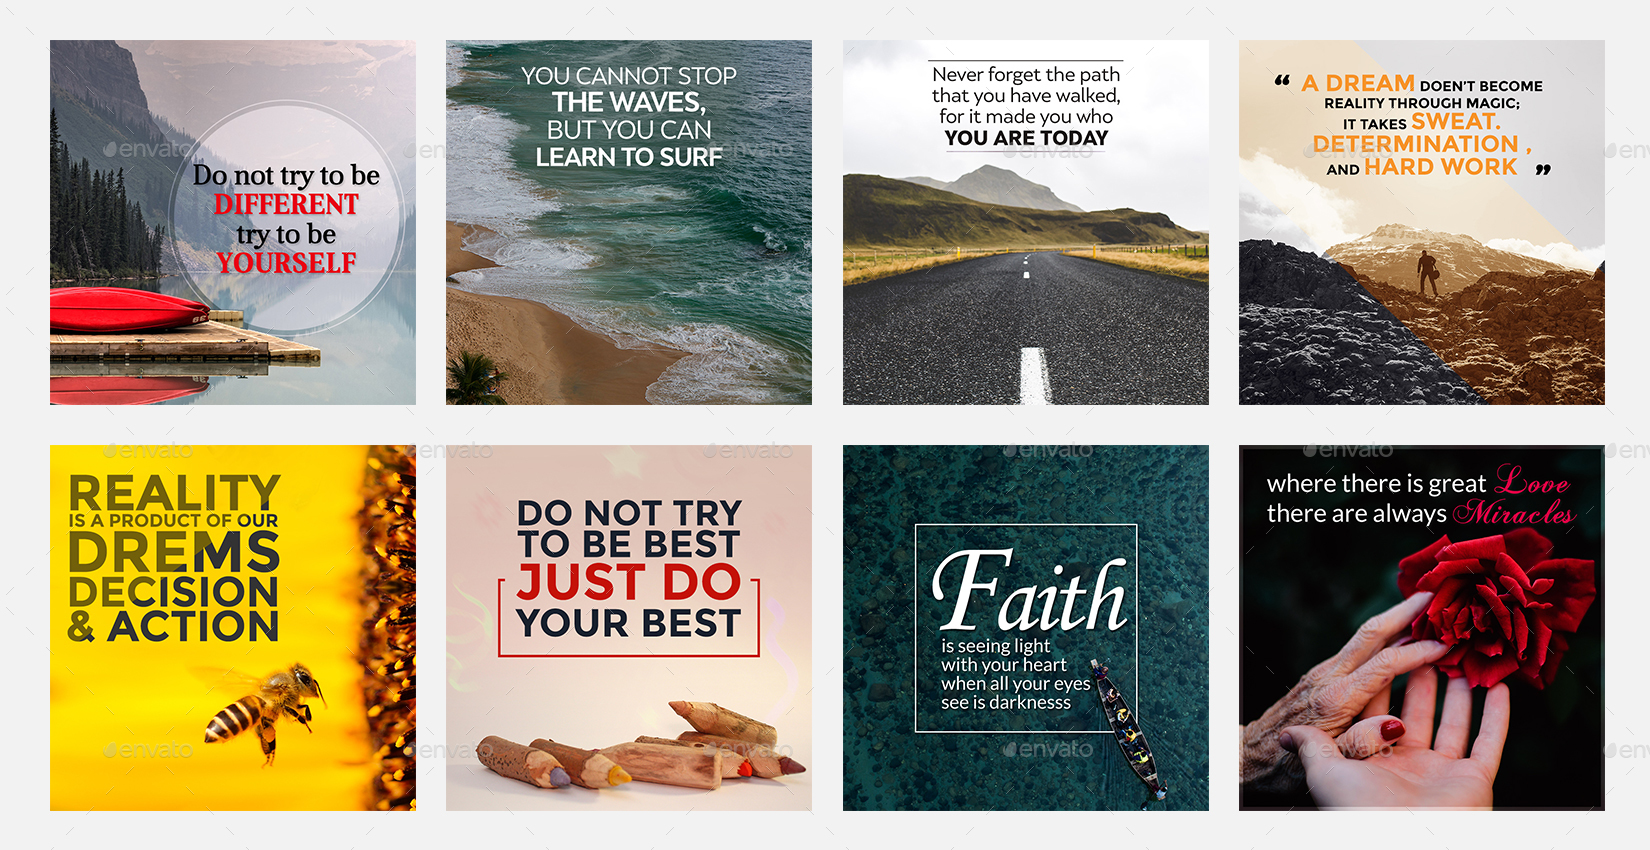 quotes instagram templates designs by doto graphicriver bee 1874 quotes instagram templates 01 preview01 jpg bee 1874 quotes instagram templates 01 preview02 jpg bee 1874 quotes instagram